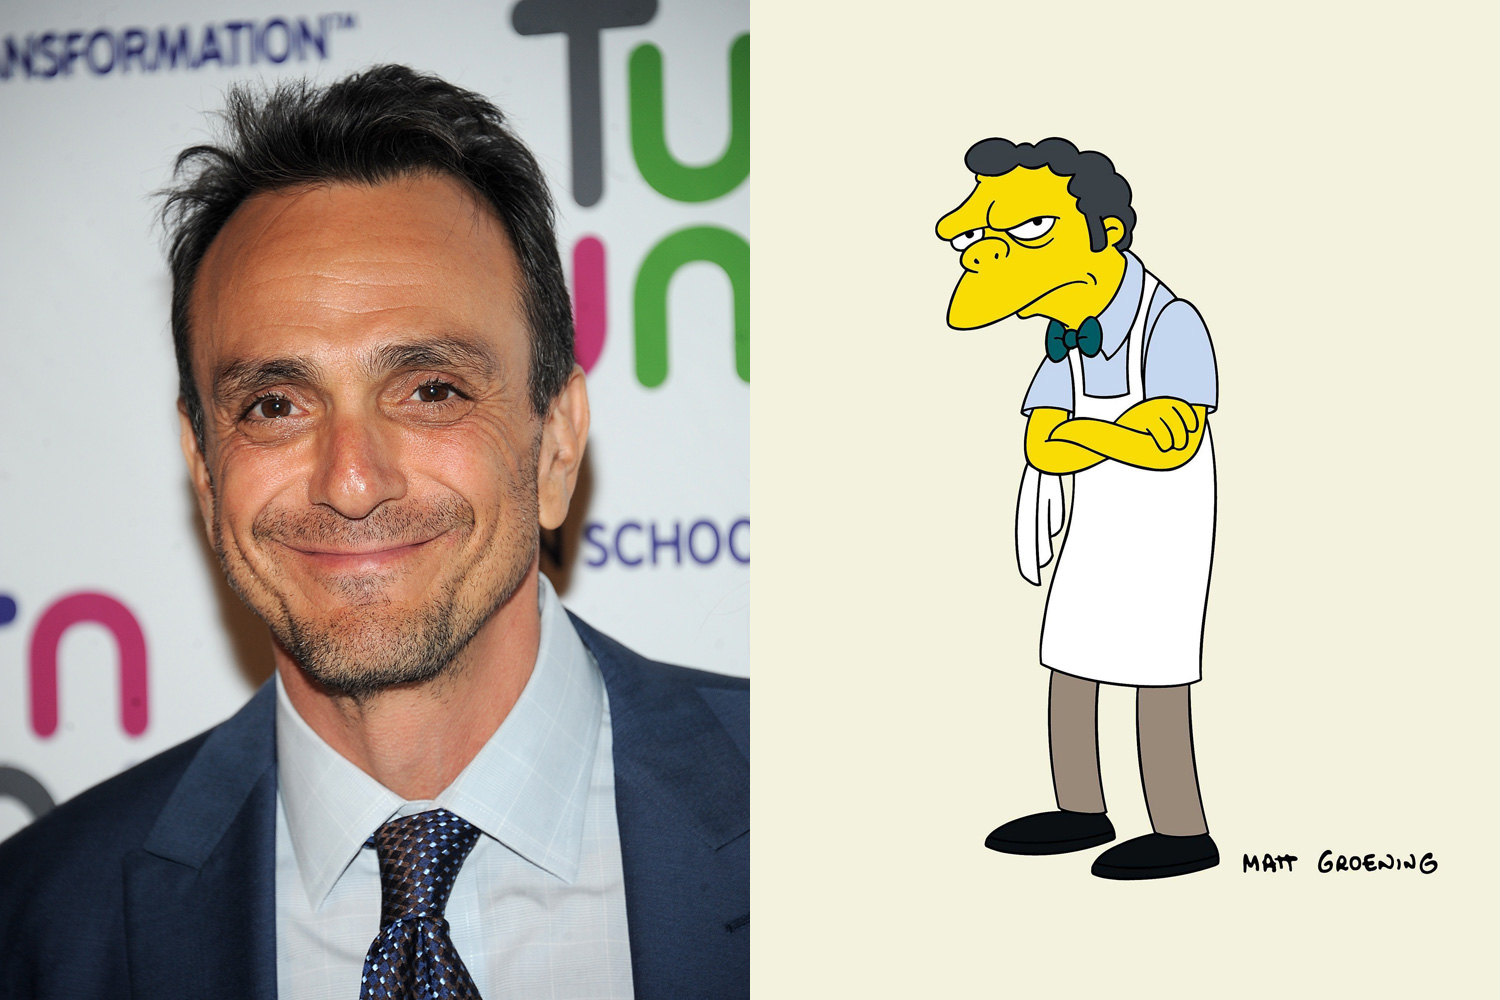 Hank Azaria plays the town barkeep, Moe Szyslak, as well as a wide cast of male characters ranging from Chief Wiggum and Apu to Duffman (can't breathe! oh no!).